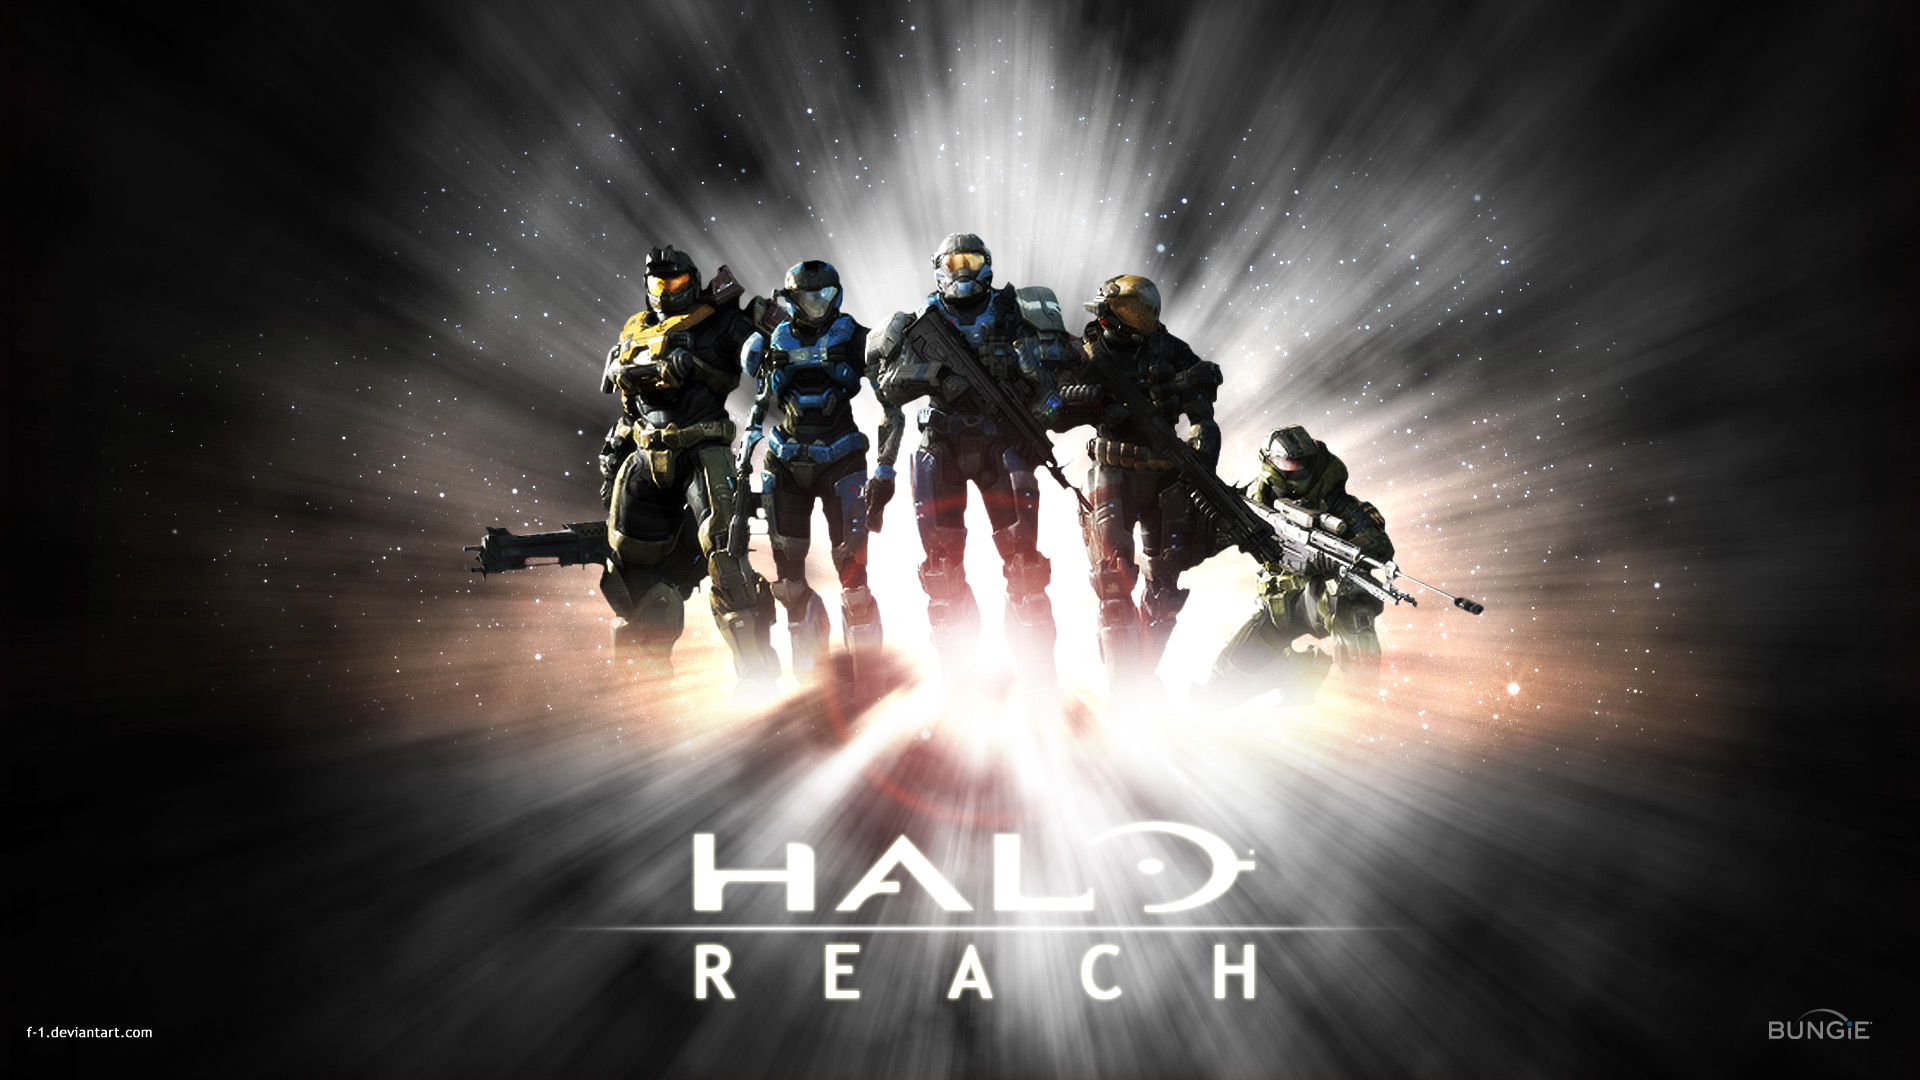 Halo Reach All Characters  wallpaper HD Halo Wallpapers  Wallpaper  1920x1080